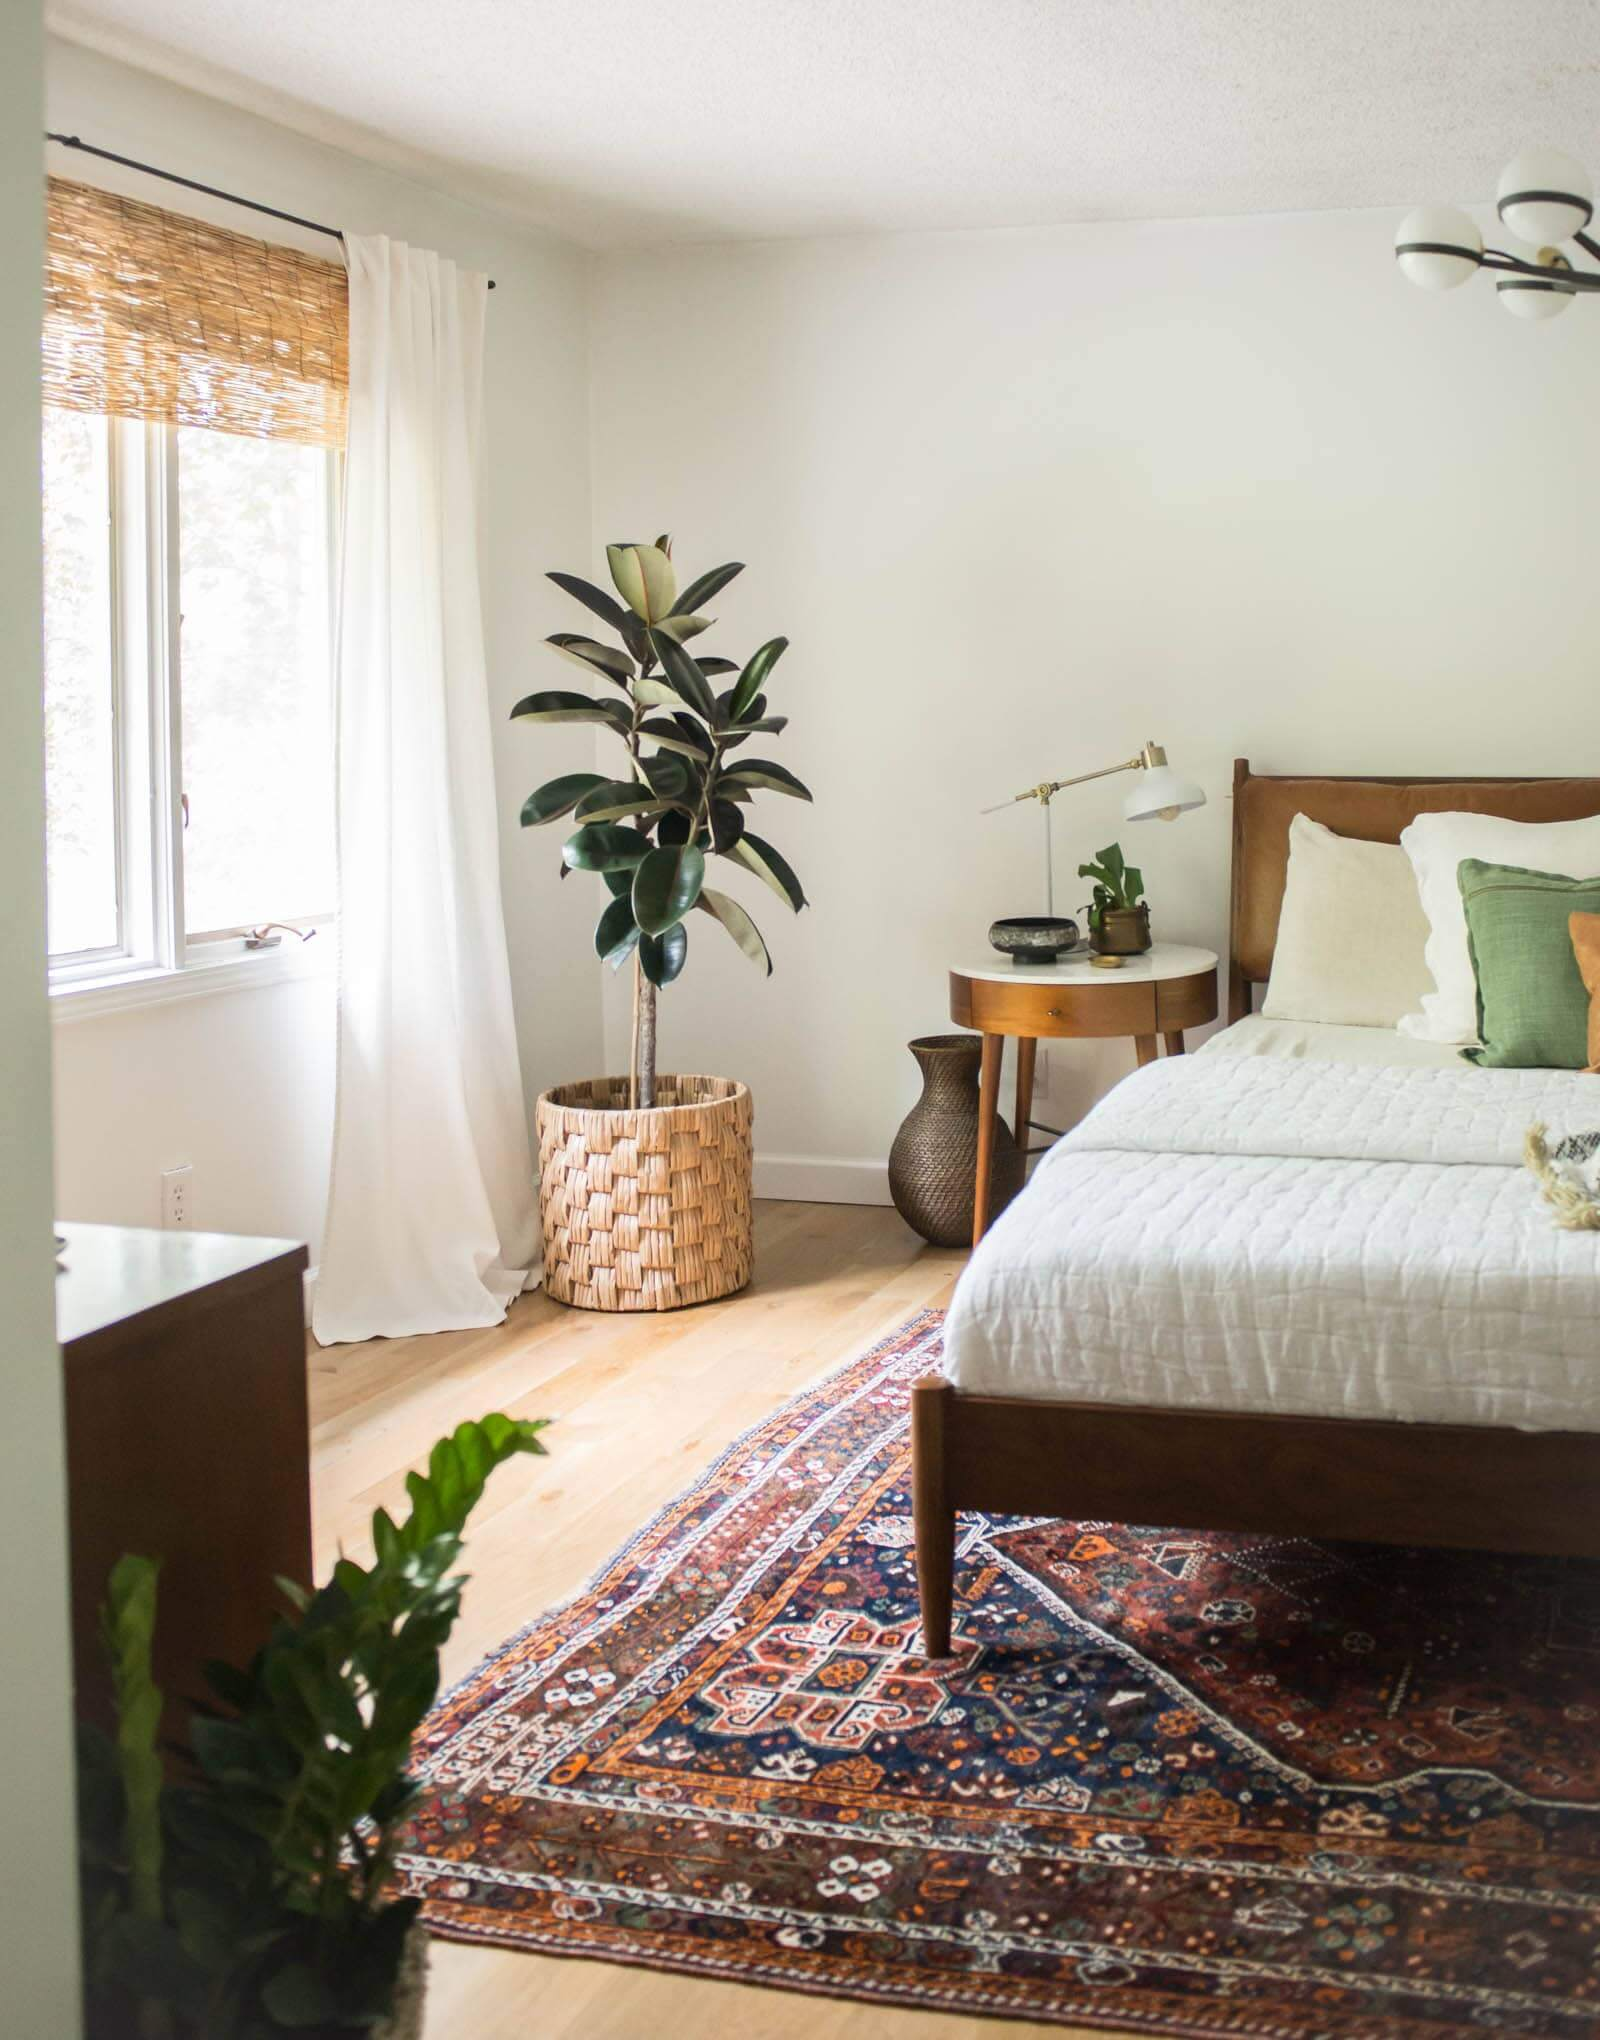 Natural Light Filtering Bamboo Blinds in Bedroom